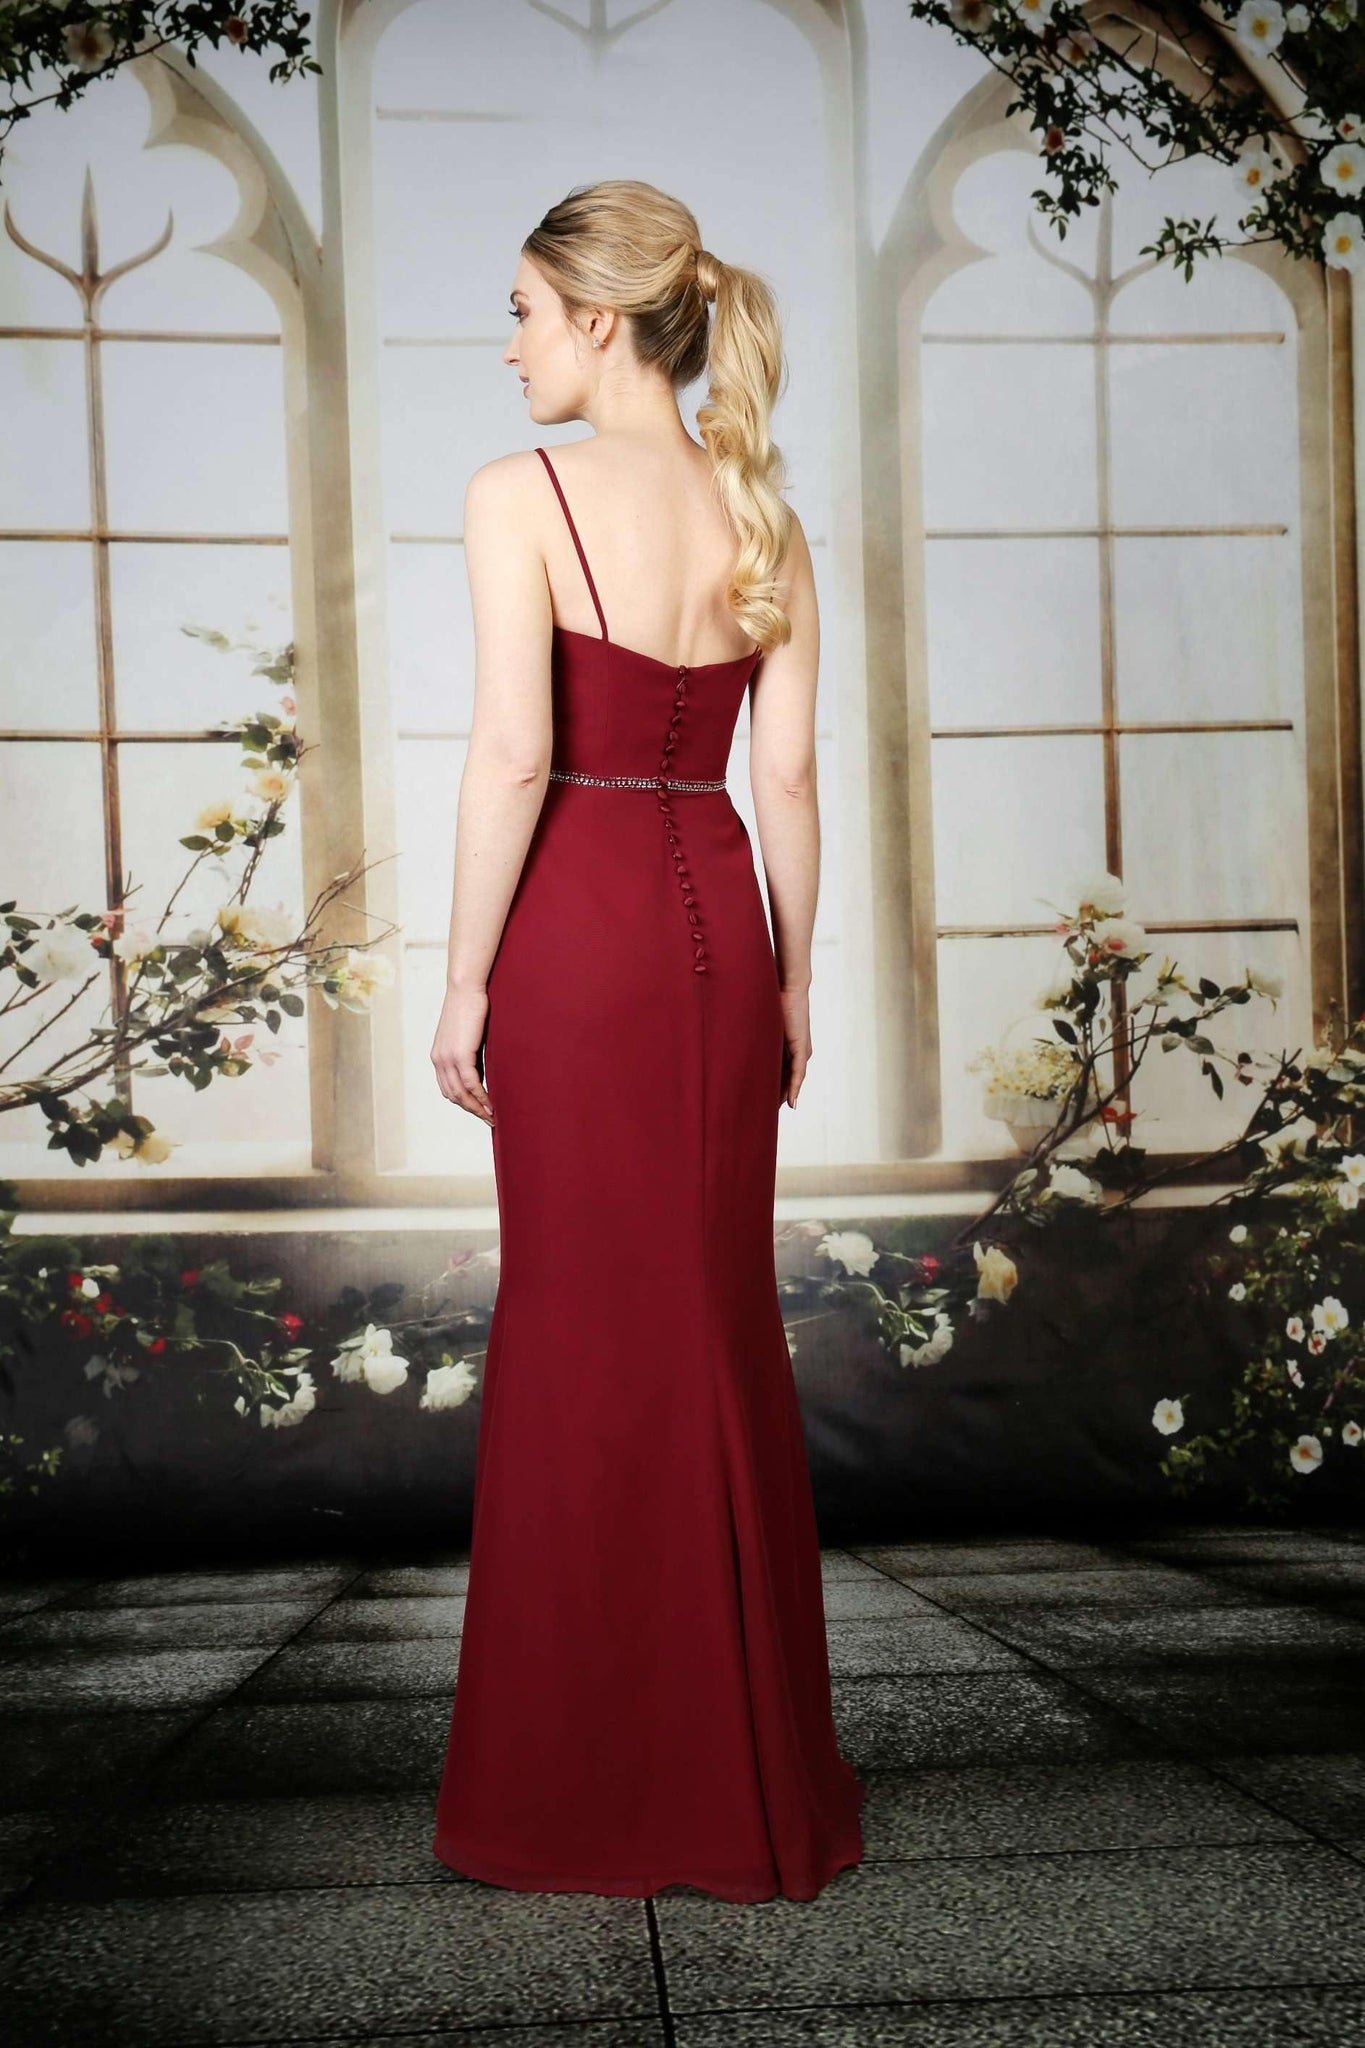 CHELSEA Nieve Occasion - Adore Bridal and Occasion Wear